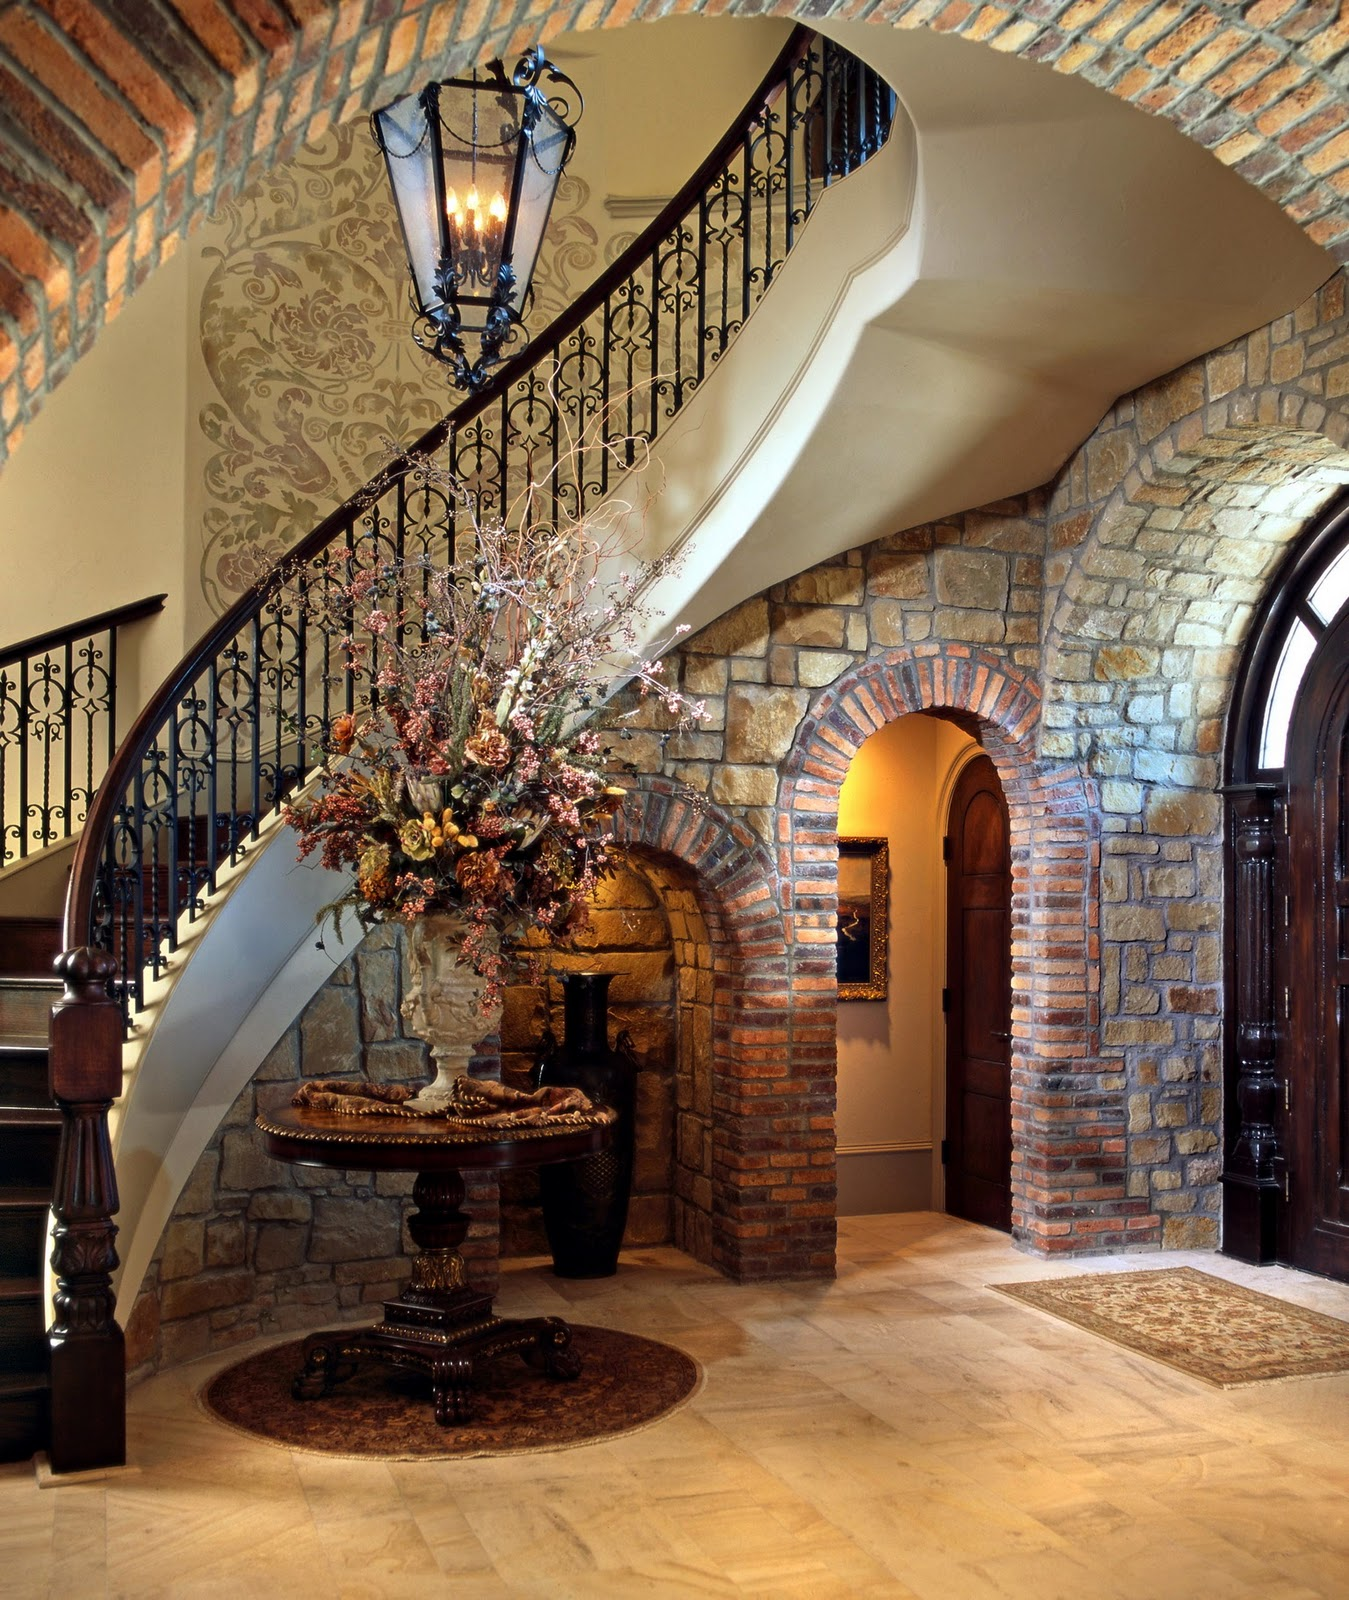 Lomonaco 39 s iron concepts home decor tuscan curved stairway Tuscan home interior design ideas